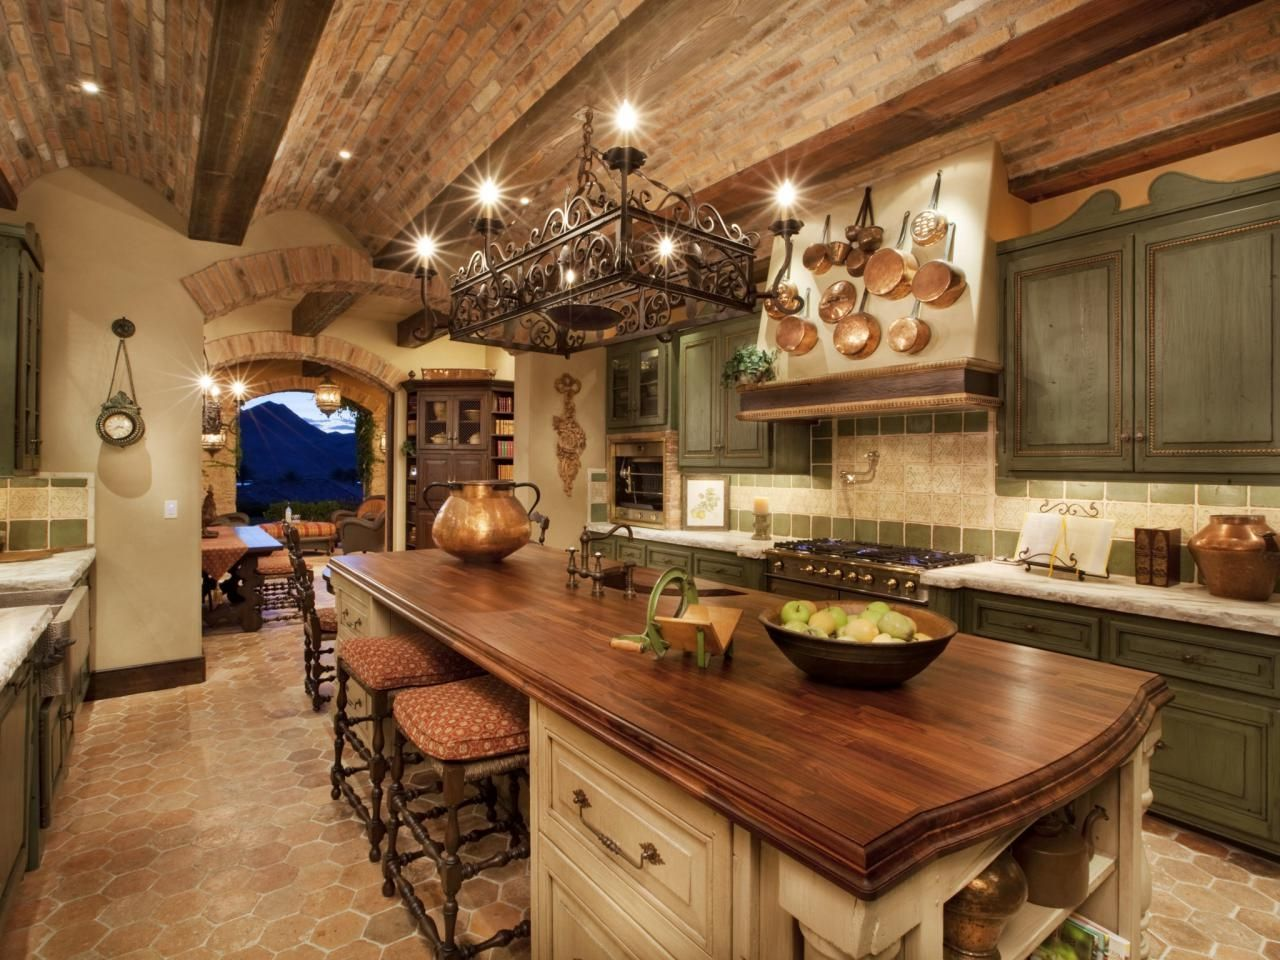 Italian Country Kitchen Stylish Italian Country Kitchen Decor For Cool Home Interiors